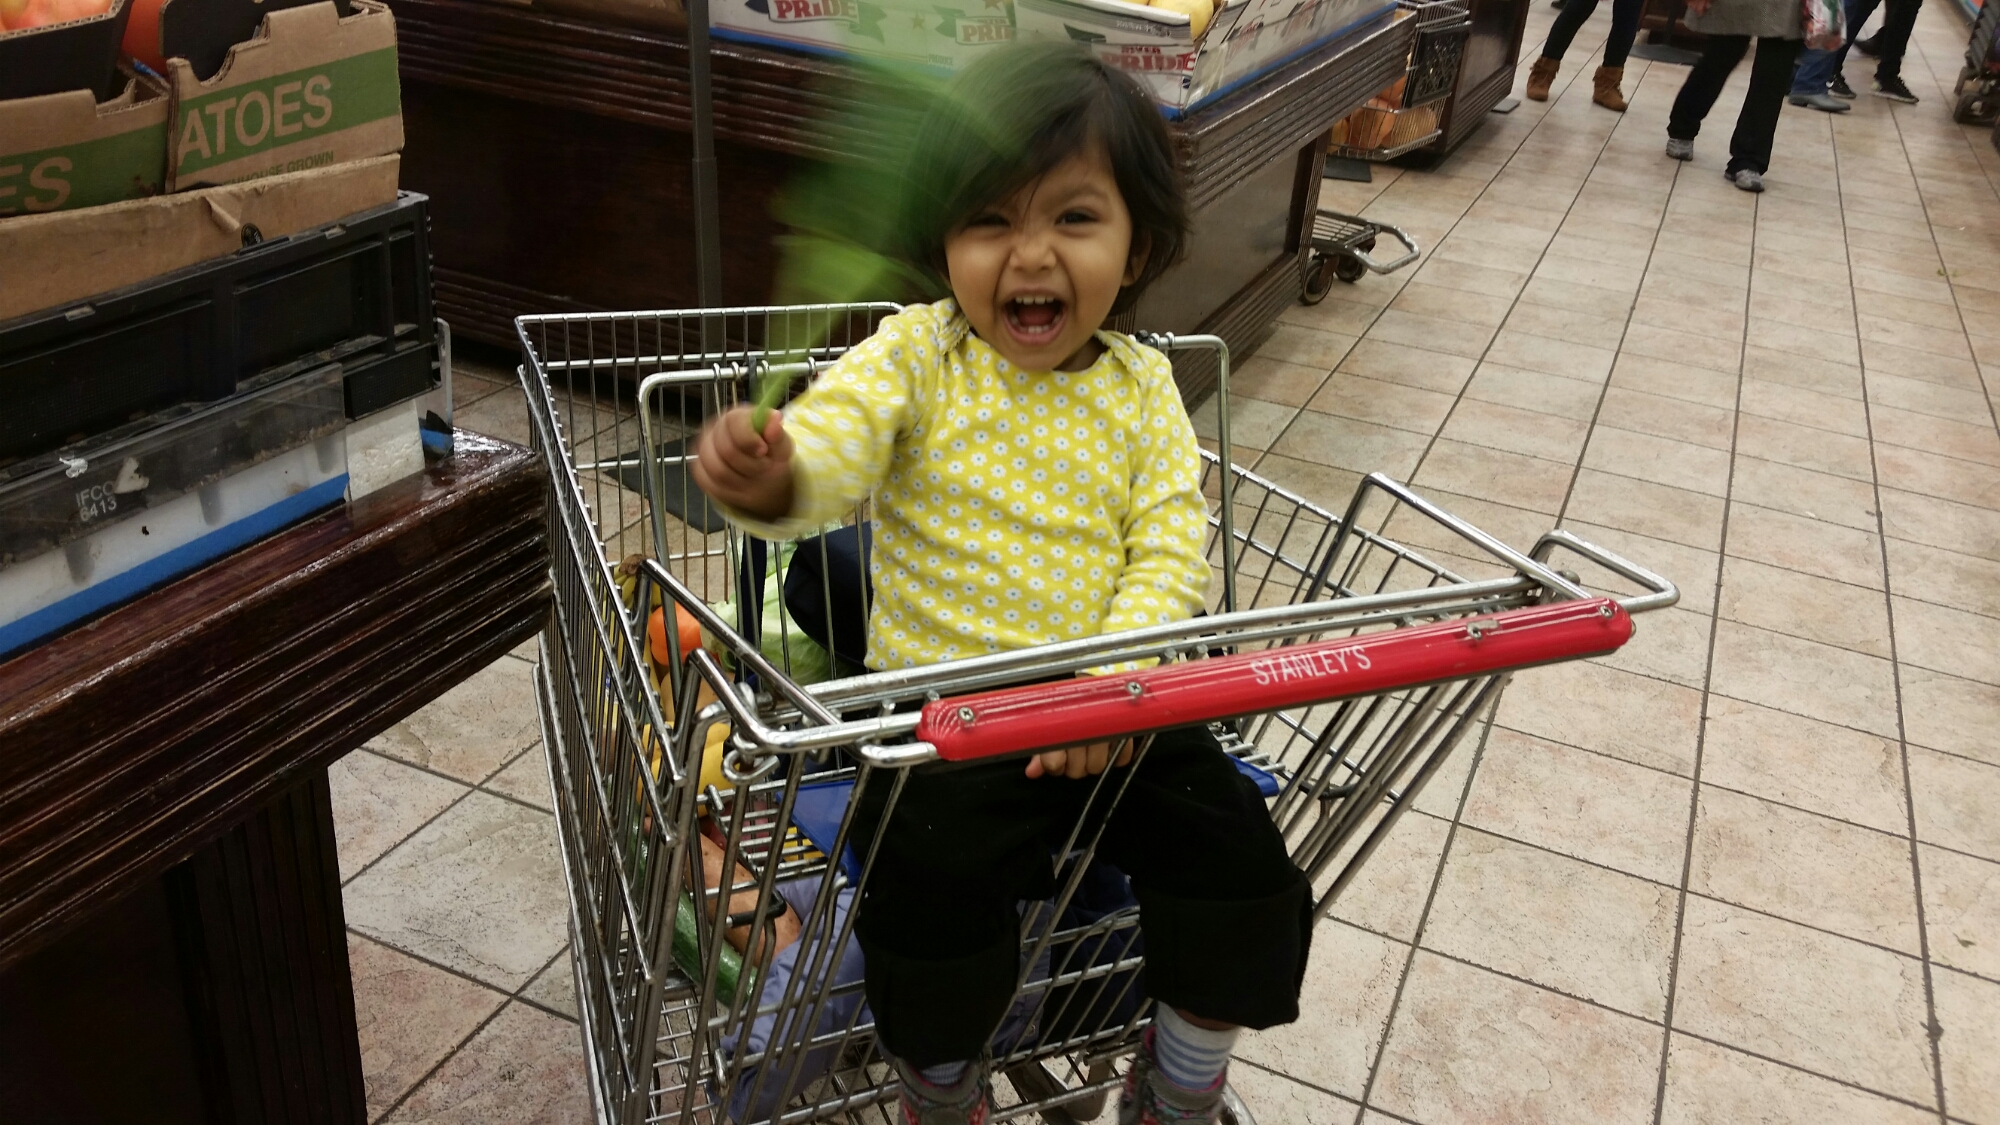 Asha grocery shopping